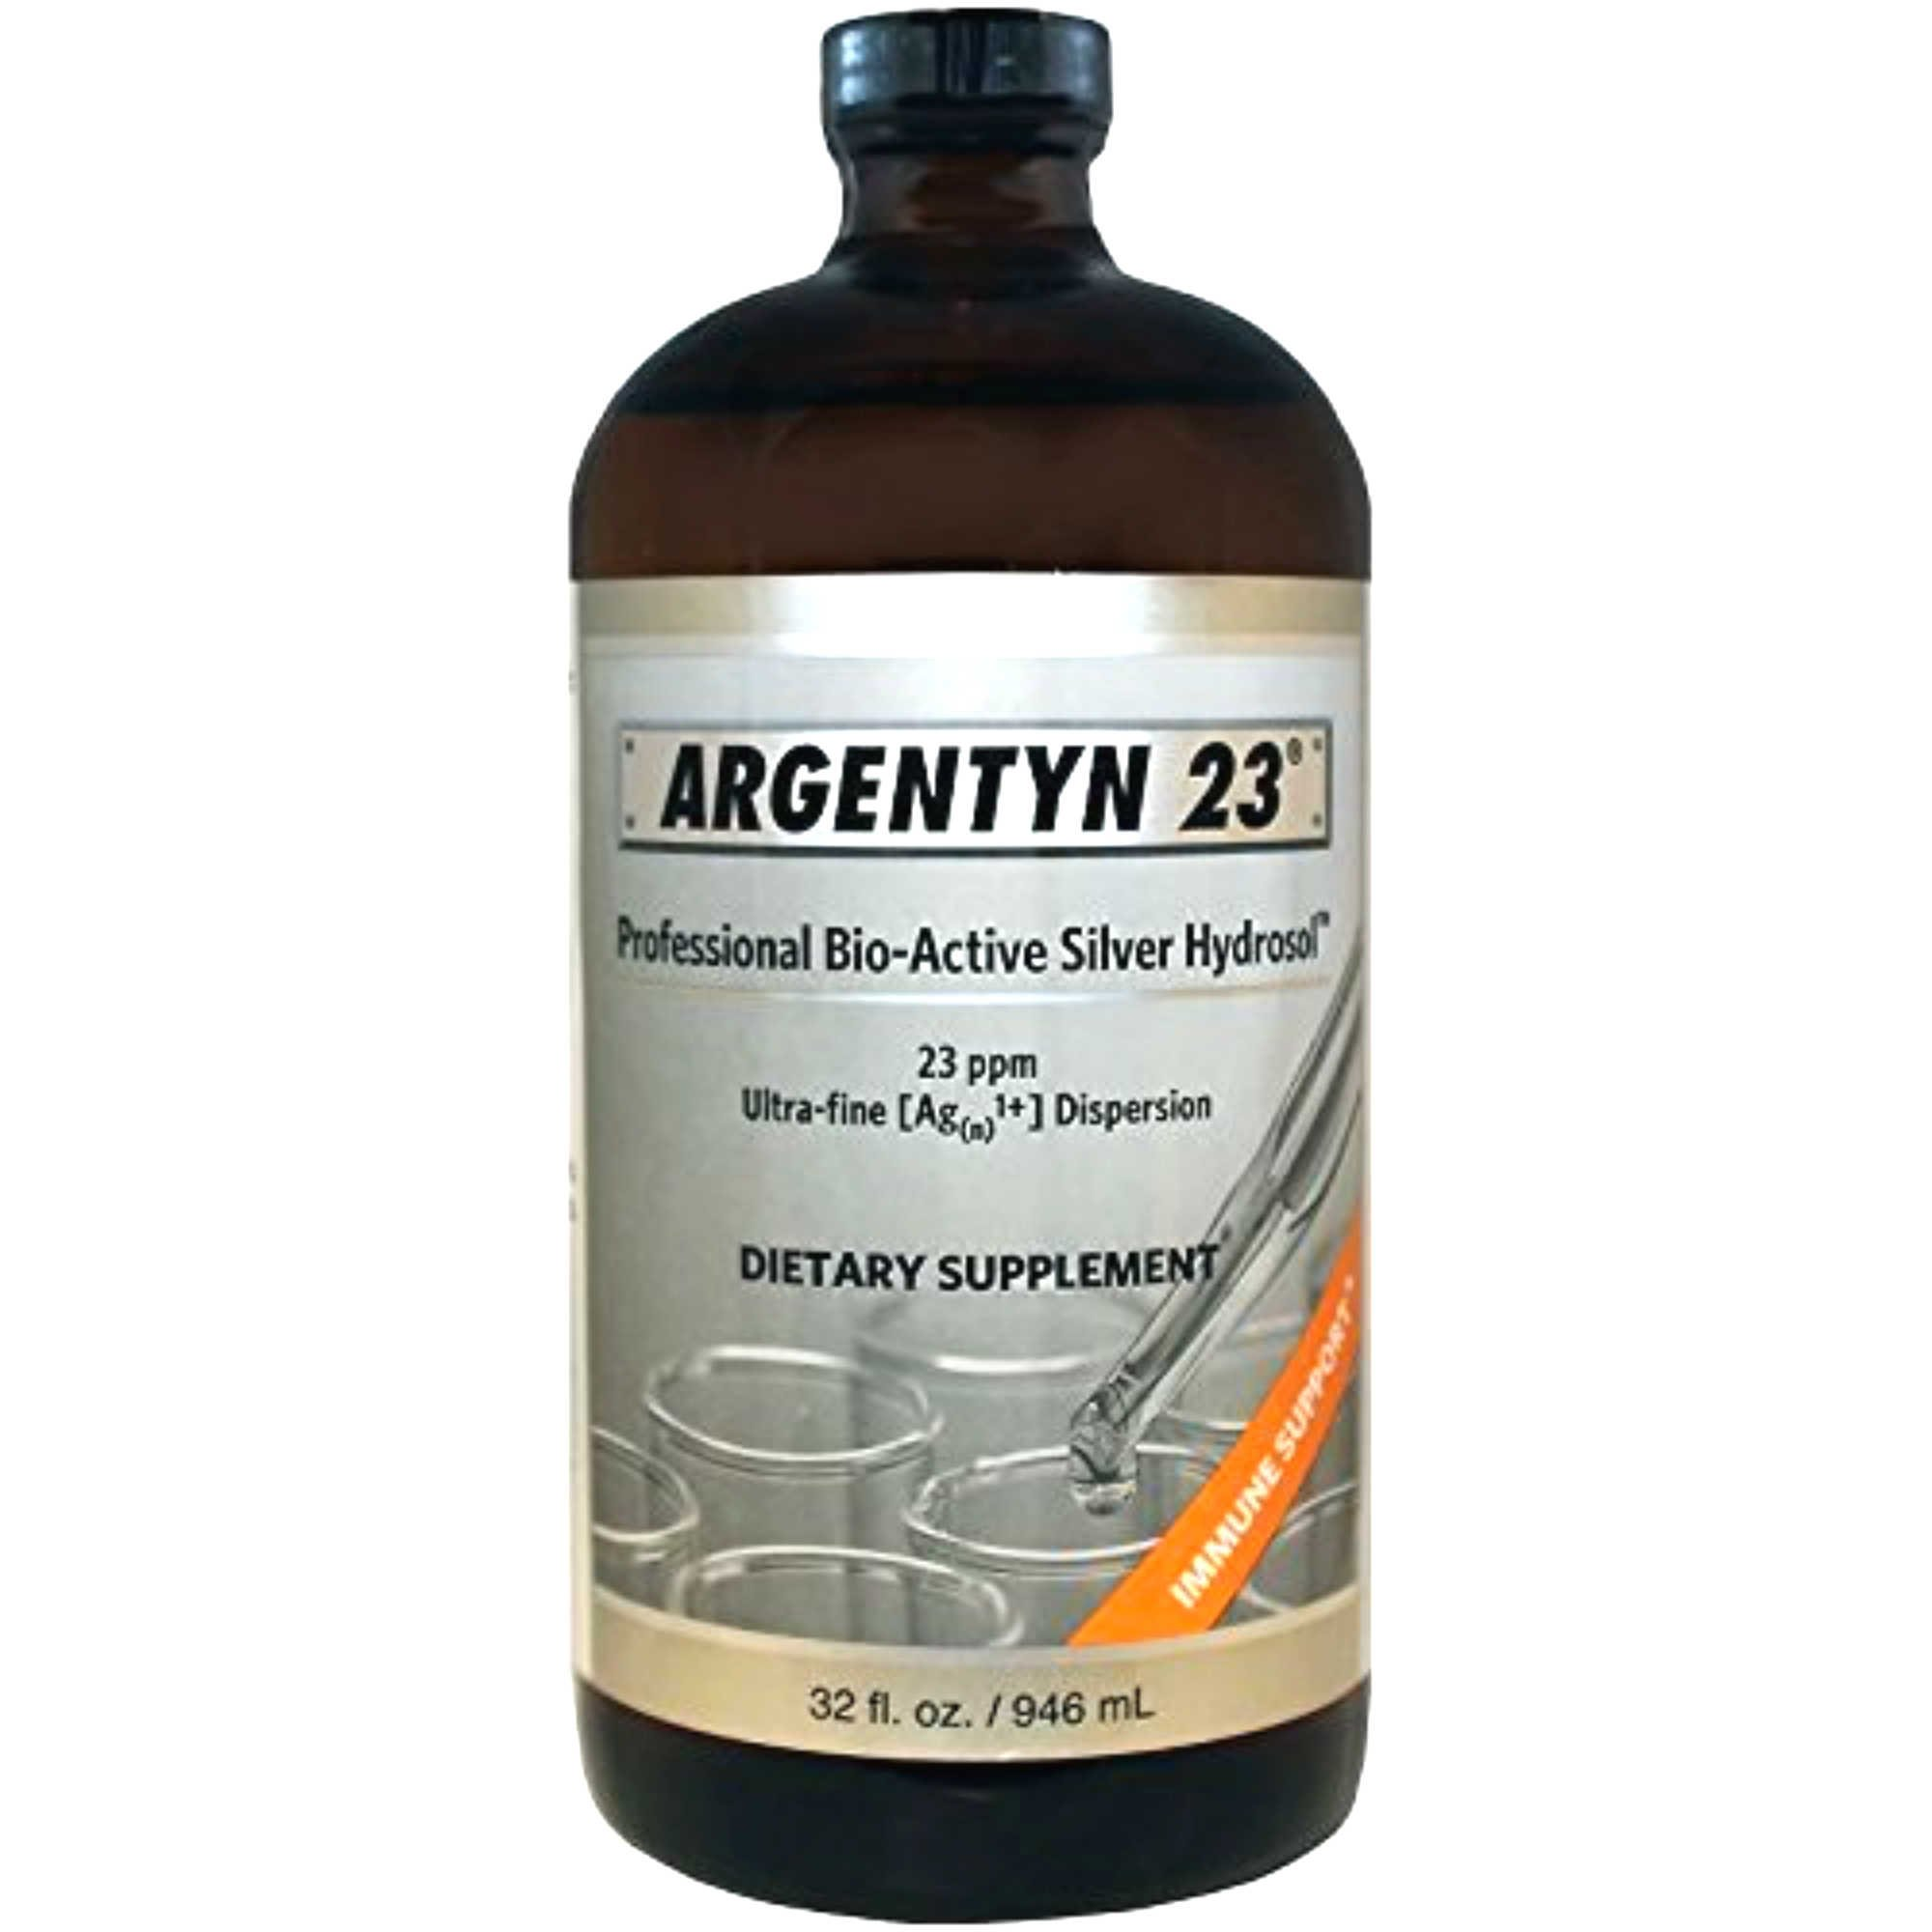 Argentyn 23 PPM Colloidal Silver Hydrosol (32 oz Value Bottle) by N-icorp (Image #2)